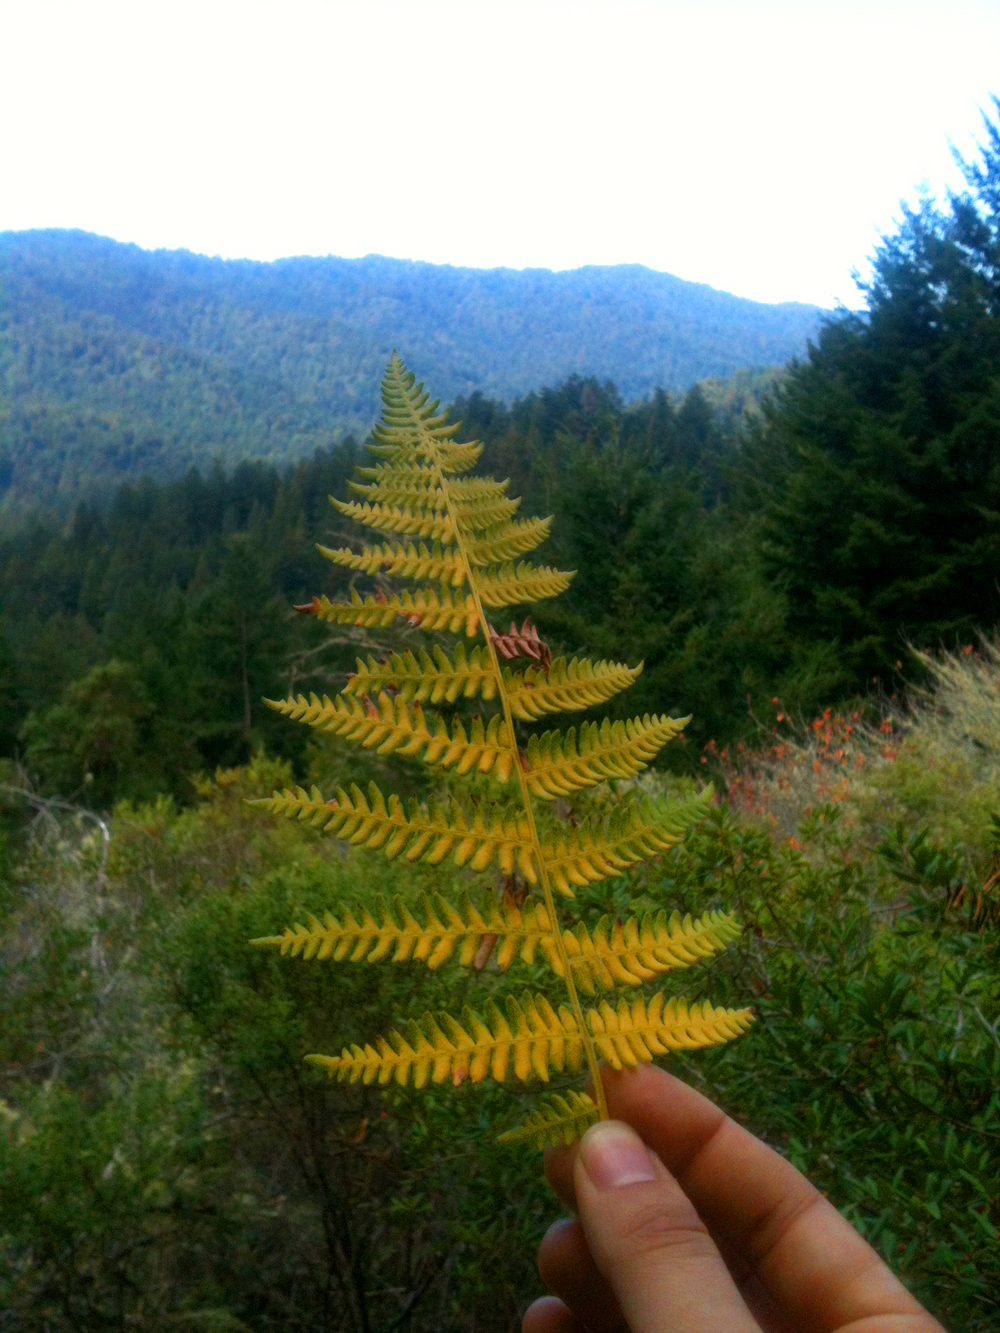 I was overwhelmed by the yellow green of this drying fern against the layers of blue and green mountains.